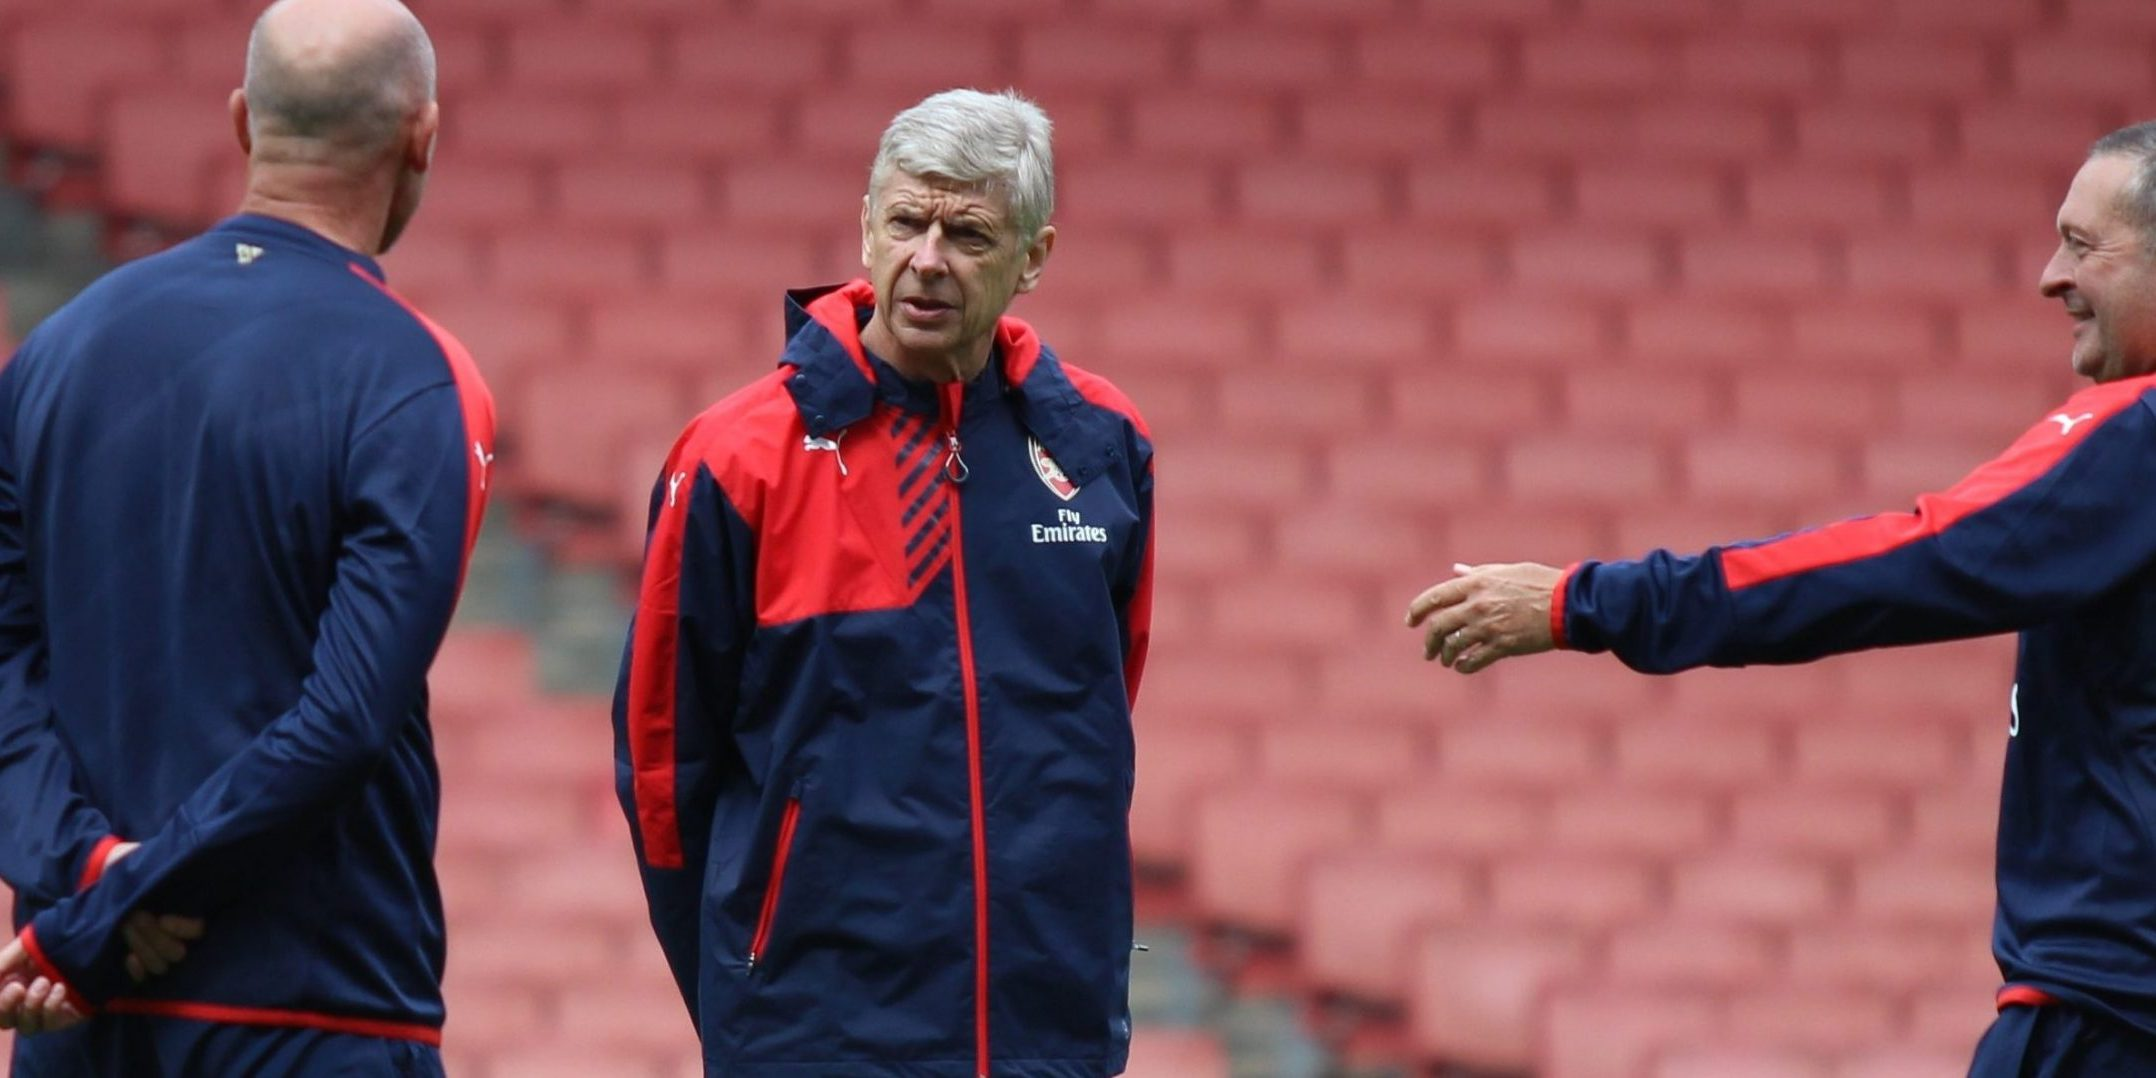 Cold water treatment: Hey Arsene Wenger - Here is the Science...